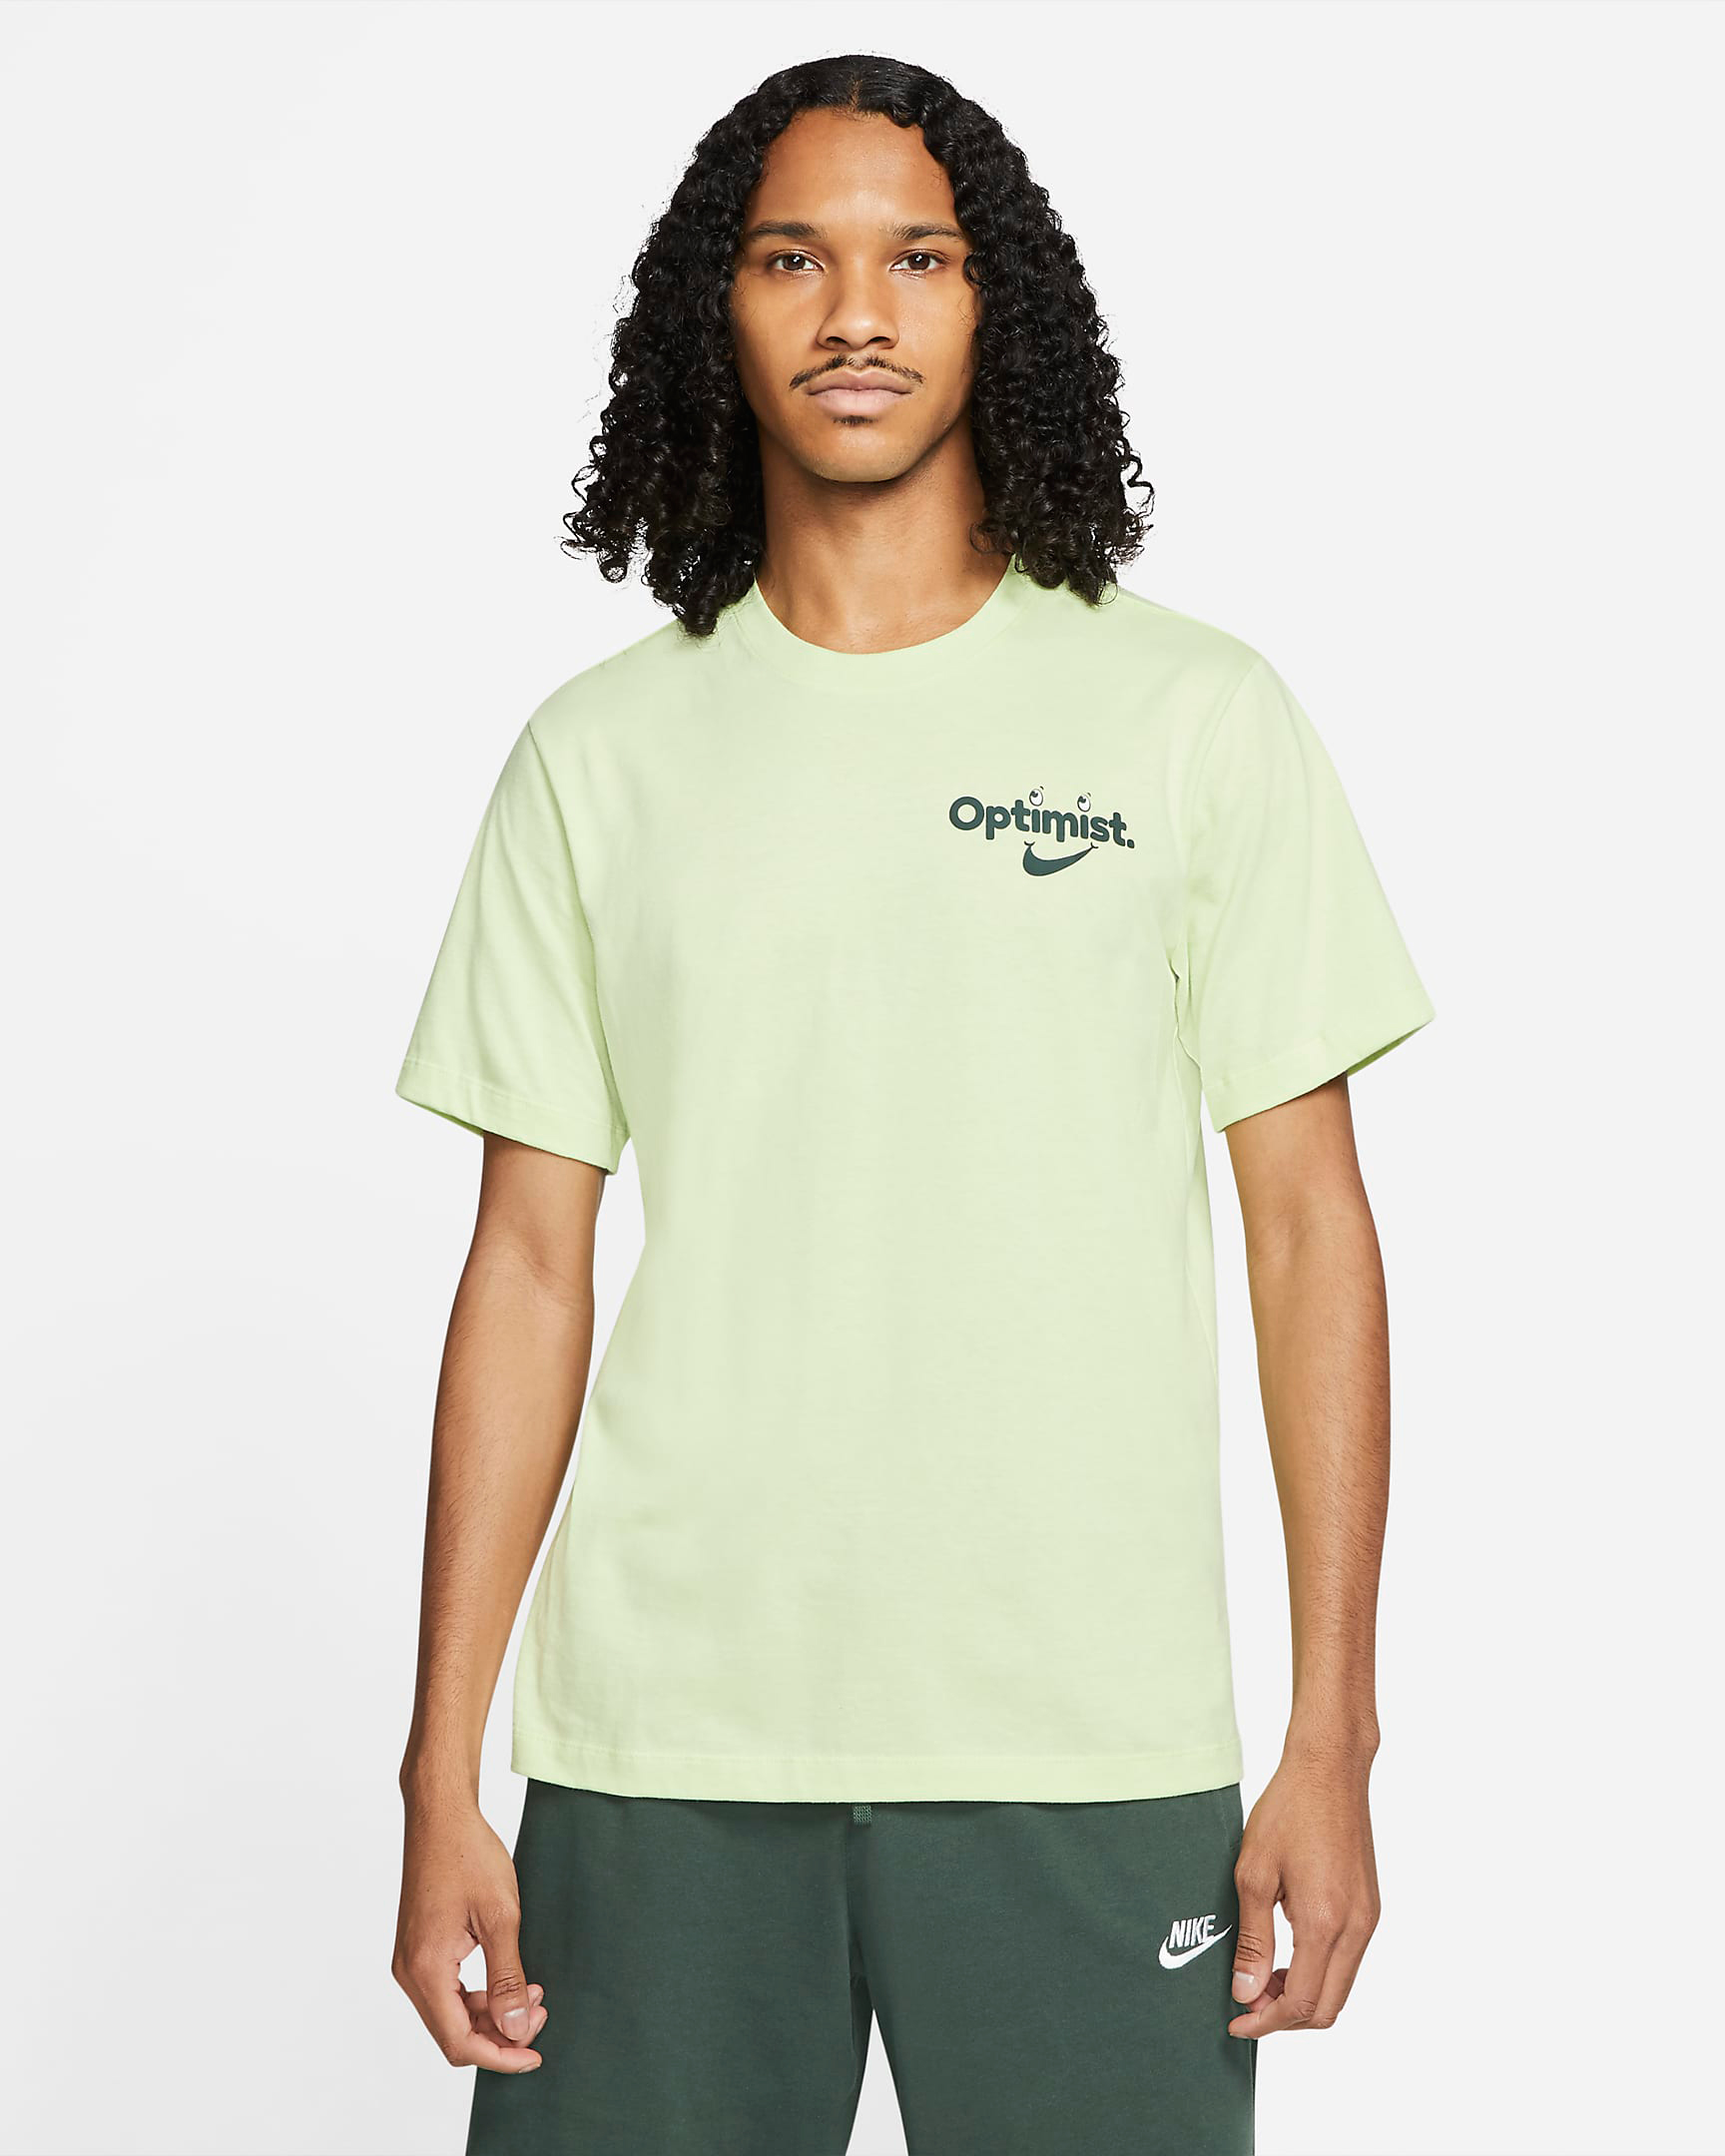 nike-light-liquid-lime-optimist-shirt